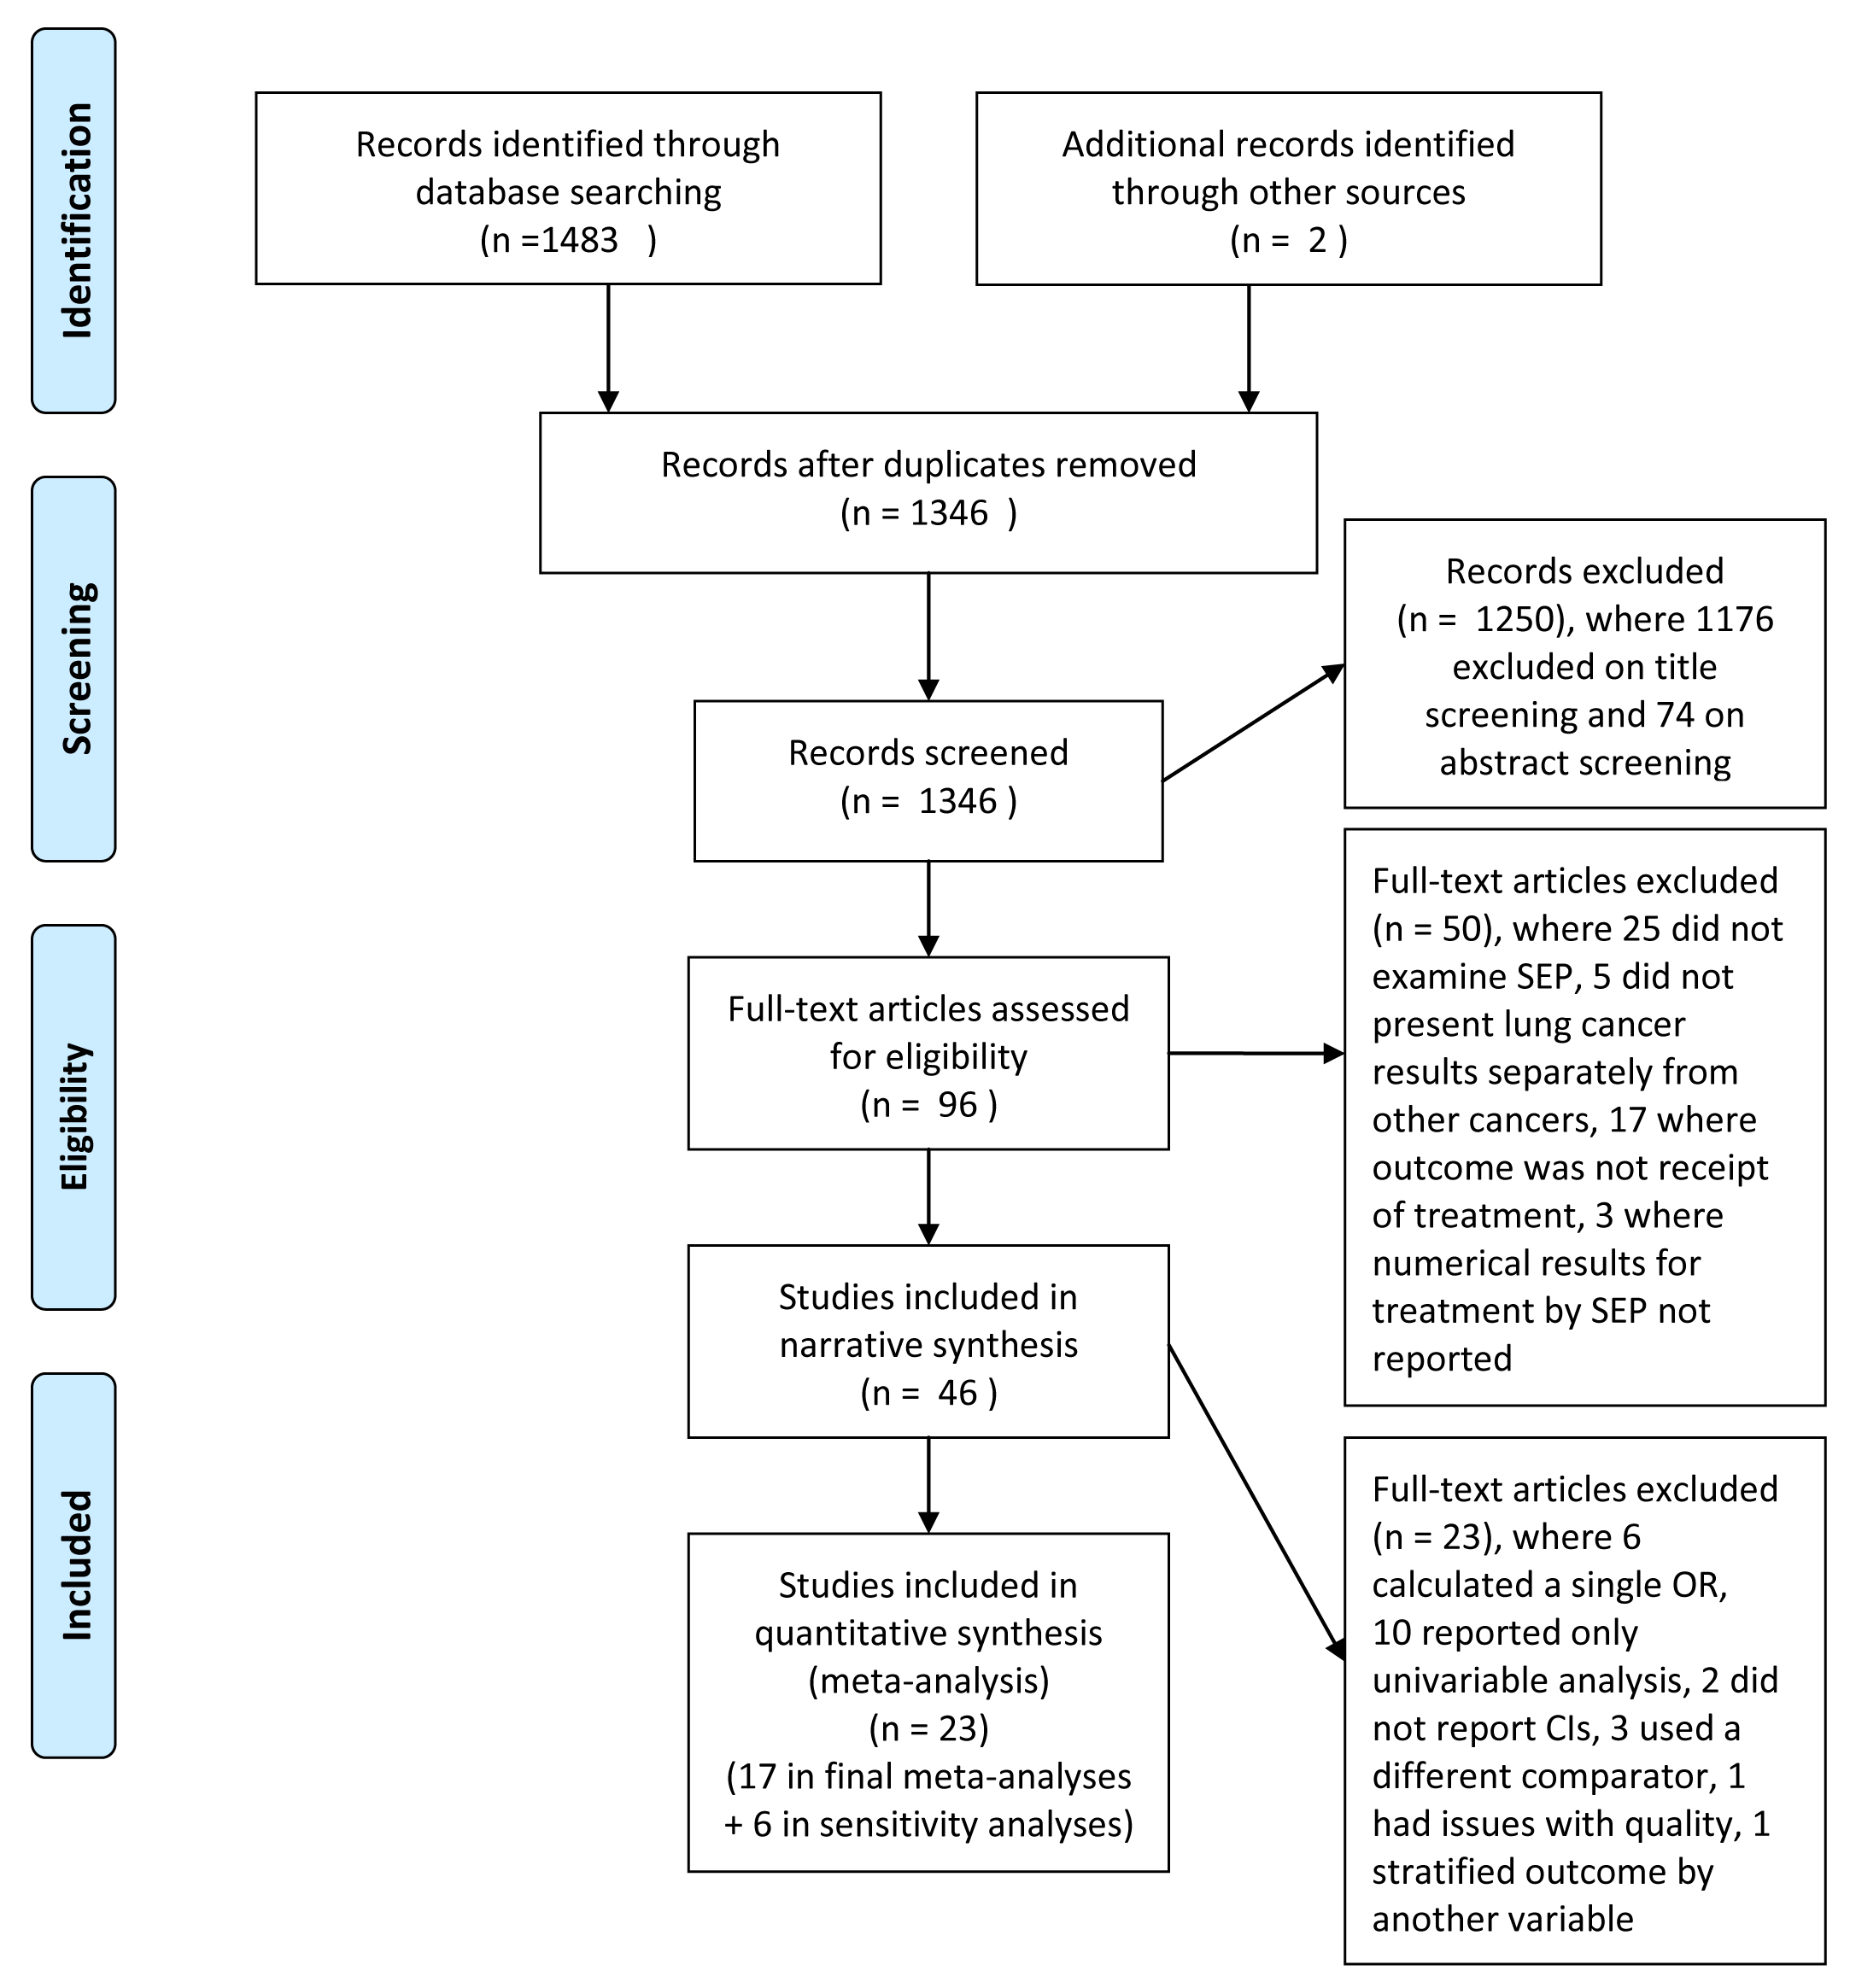 Flow diagram of study selection and exclusion.